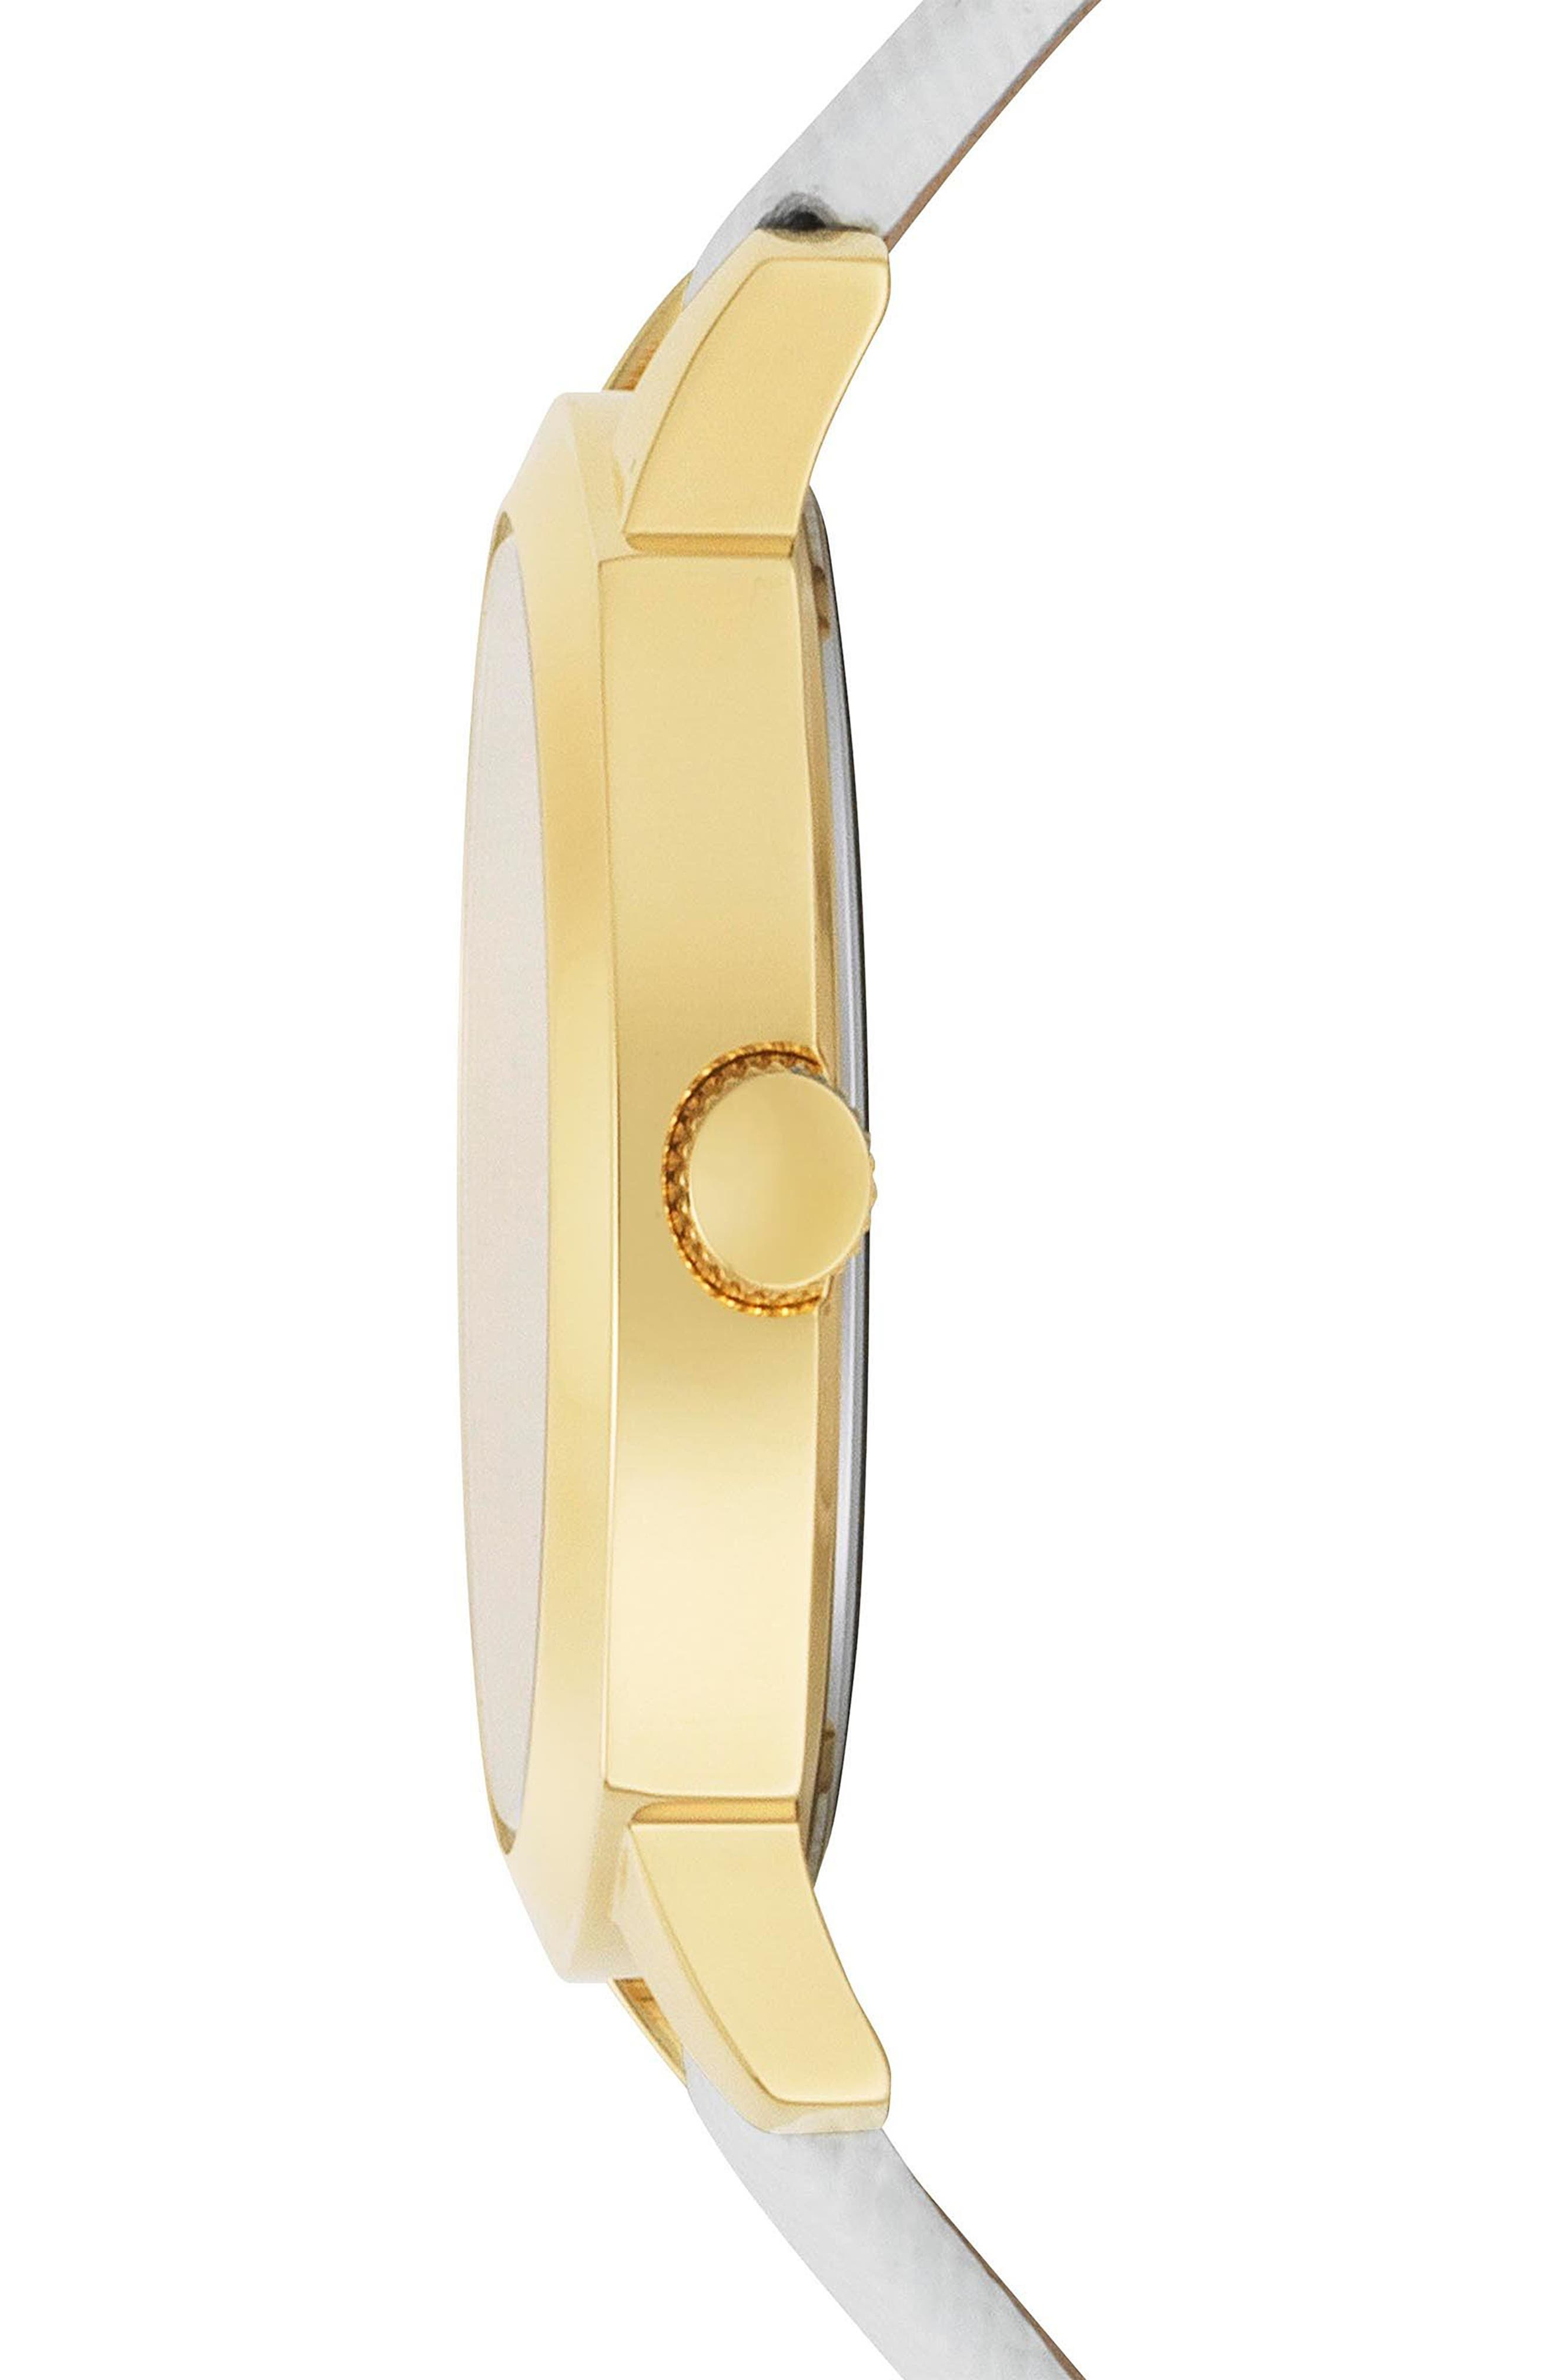 VERSUS by Versace Chelsea Leather Strap Watch, 34mm,                             Alternate thumbnail 2, color,                             White/ Silver/ Gold